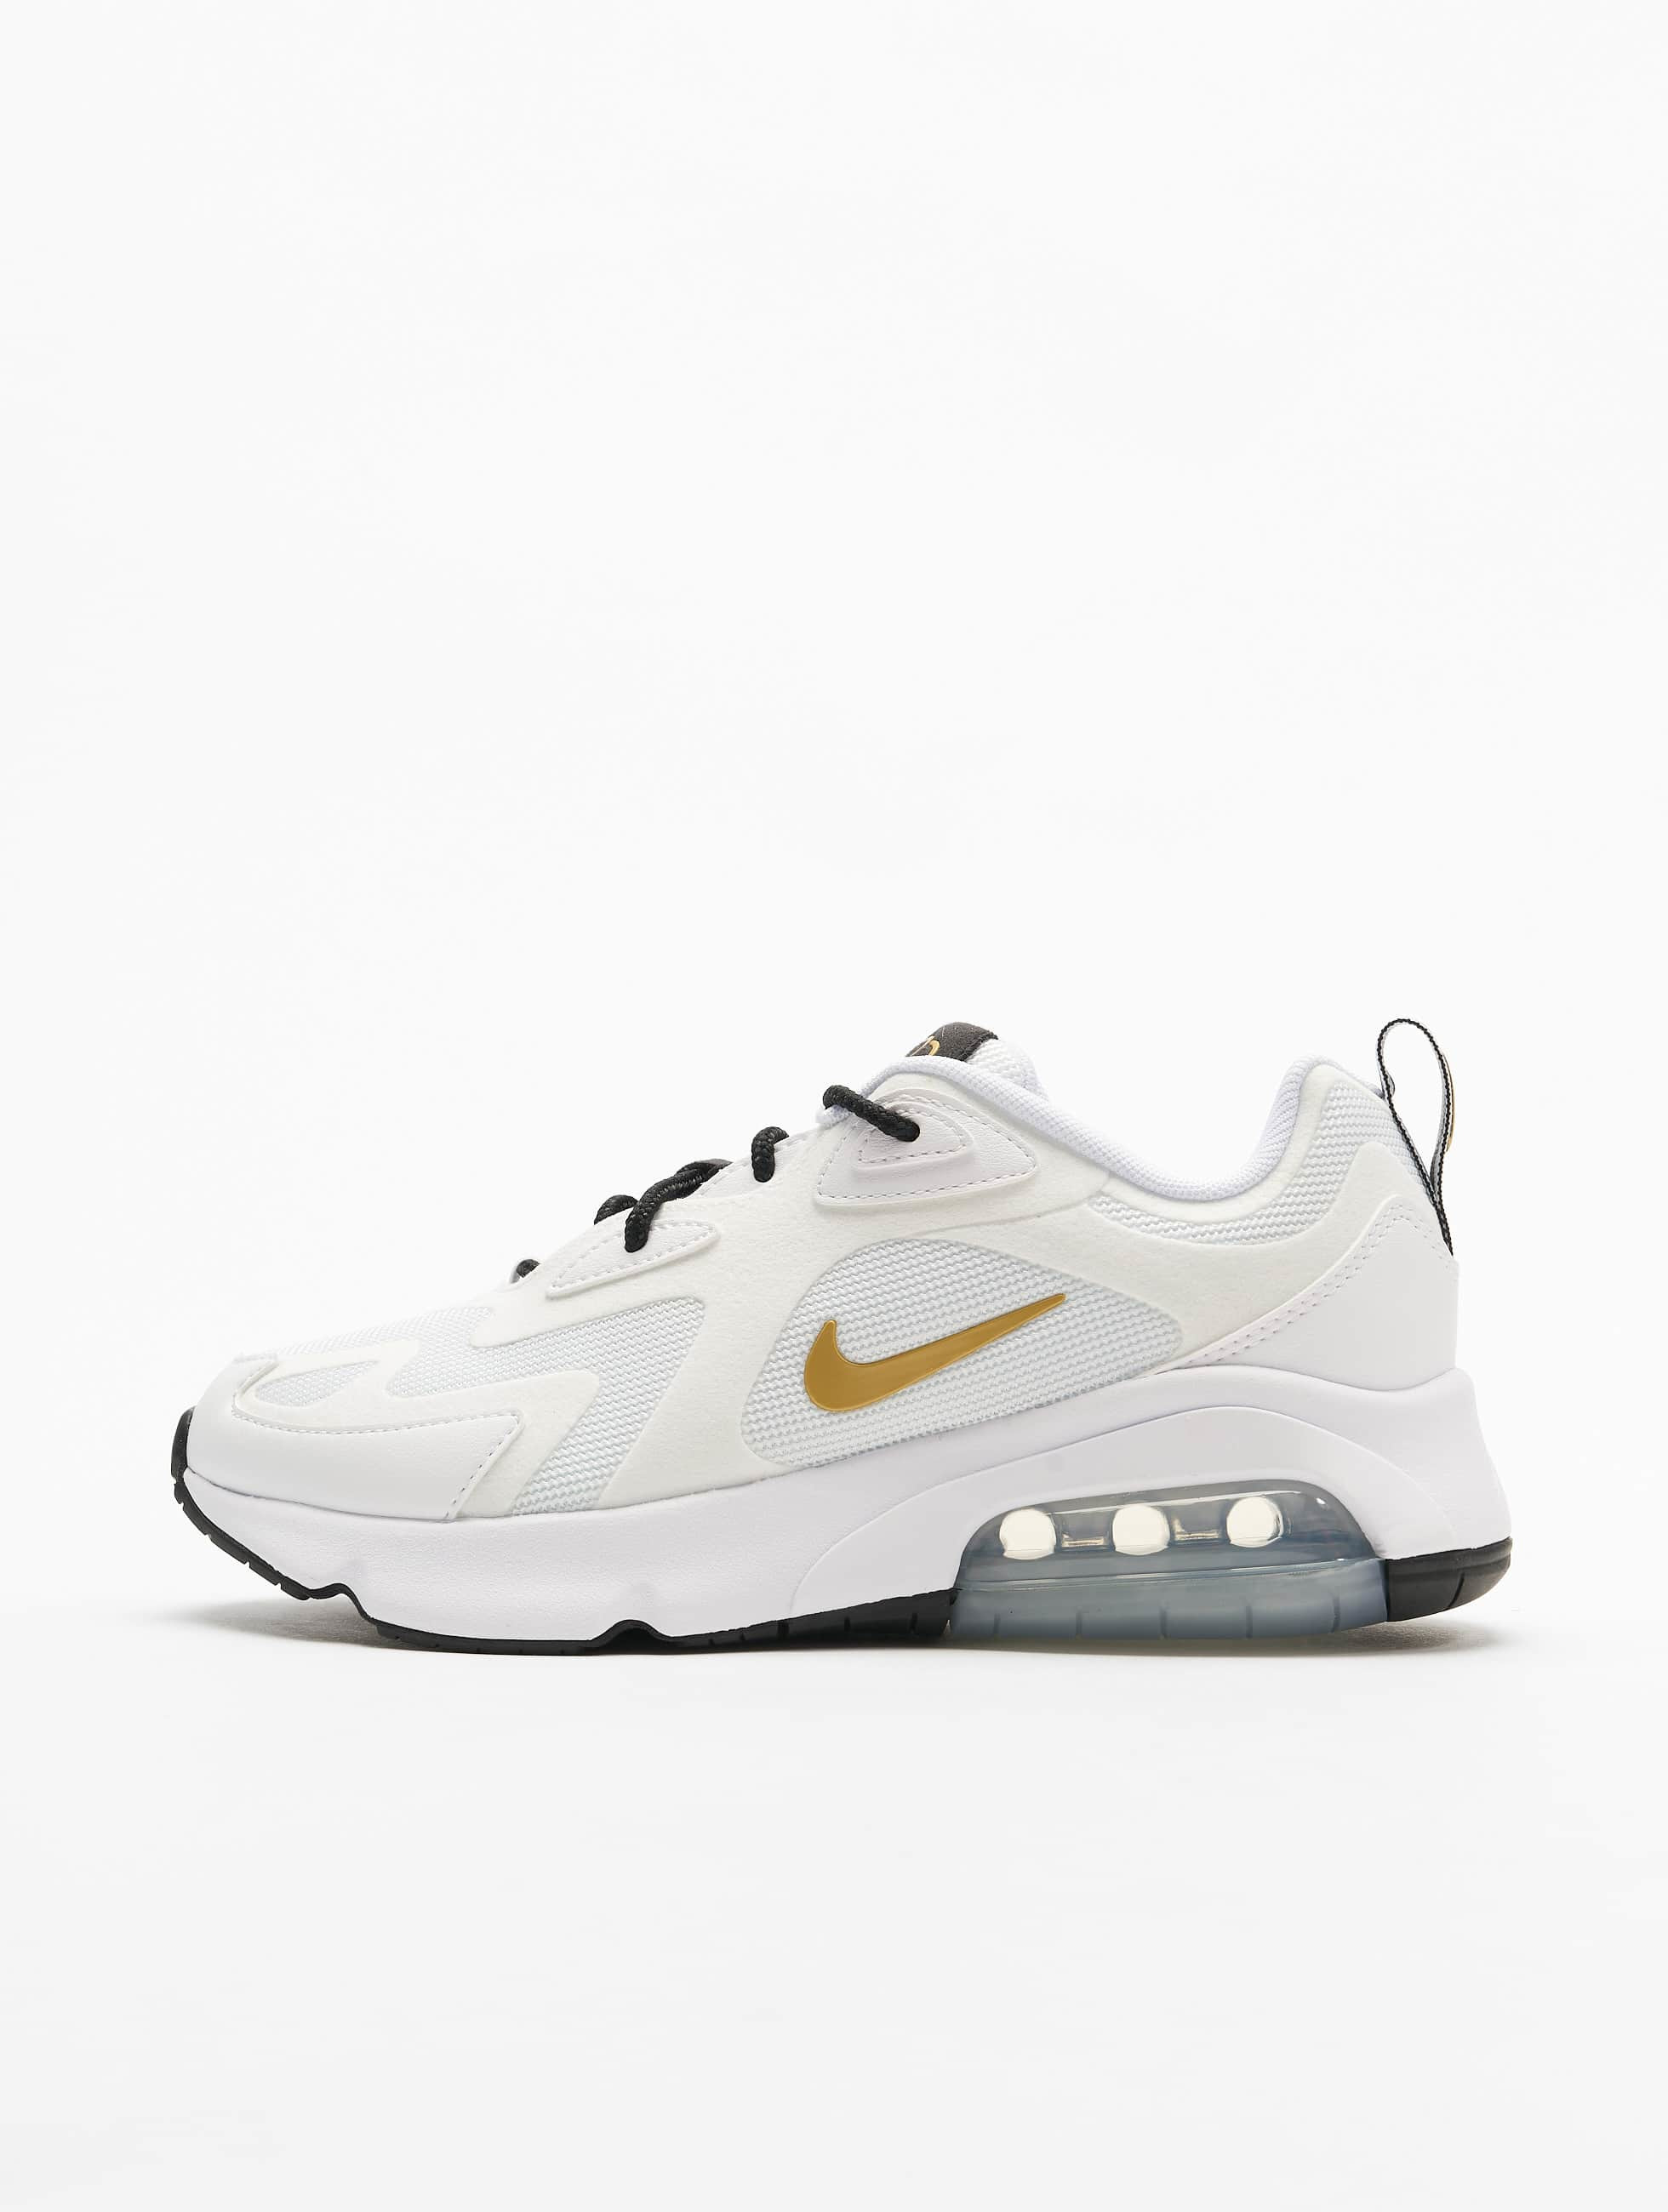 Nike Air Max 200 Sneakers White/Metallic Golden/Black